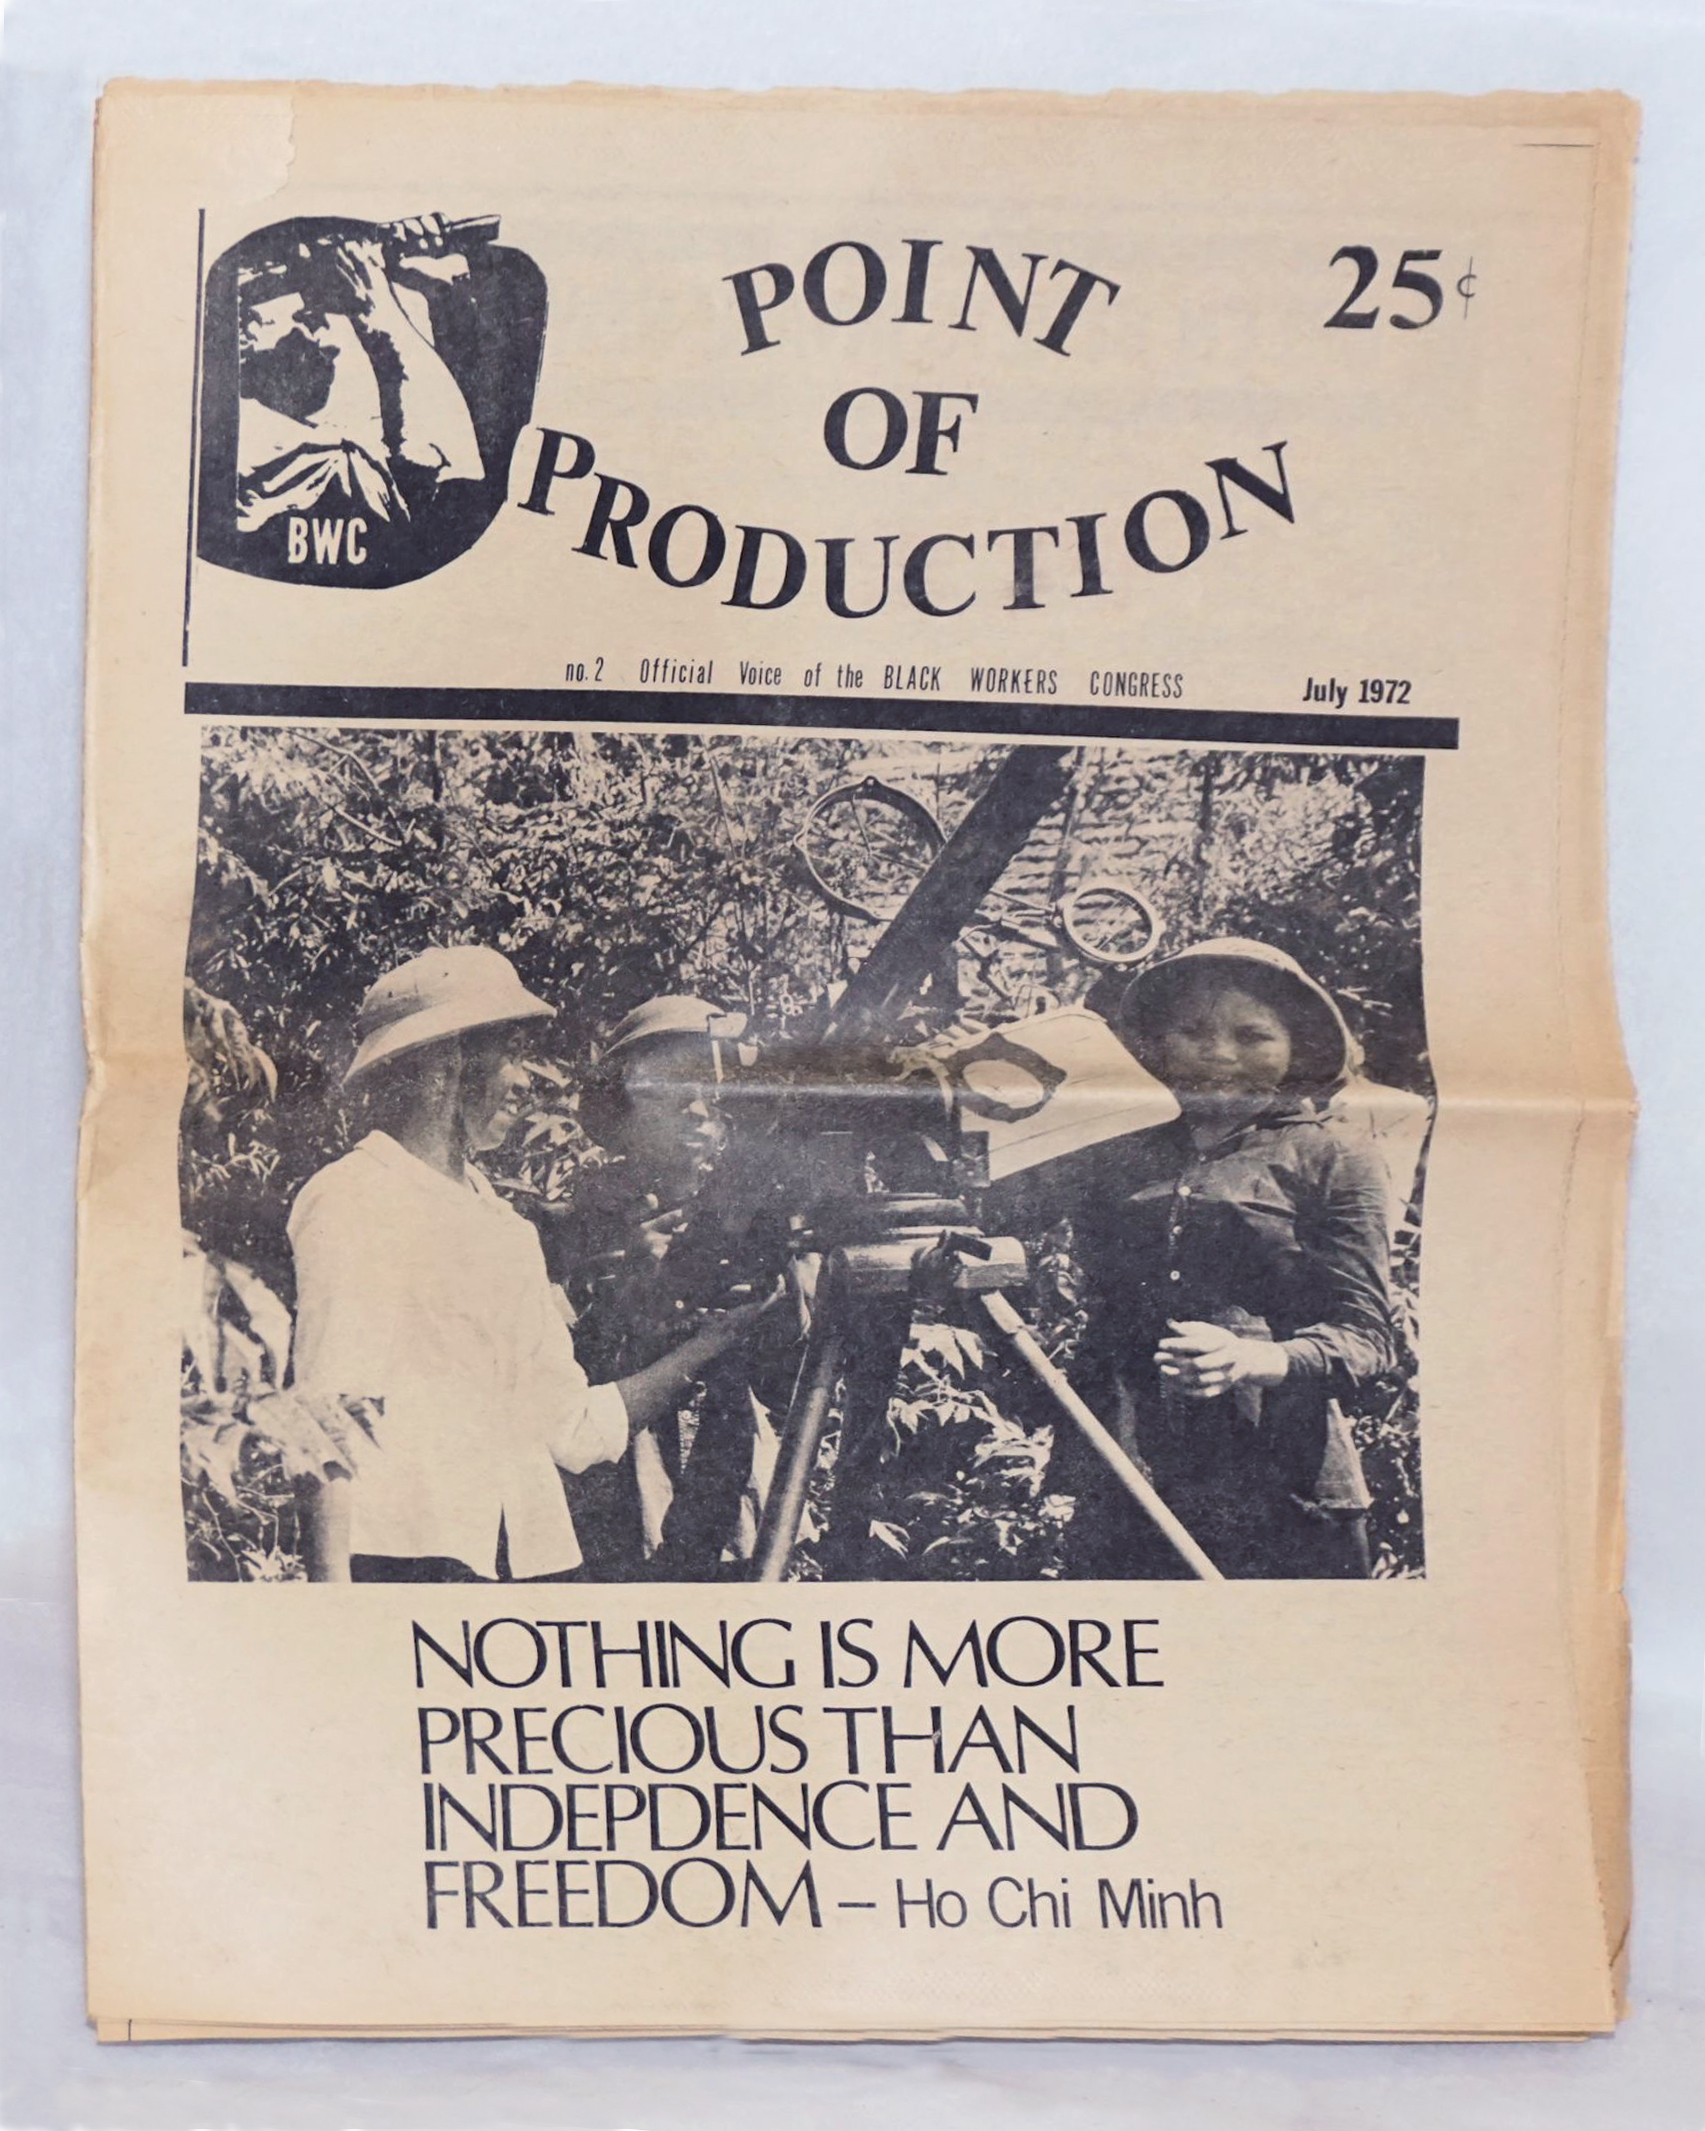 Point of Production No.2 July 1972 - Official Voice of the Black Workers Congress (newspaper cover)